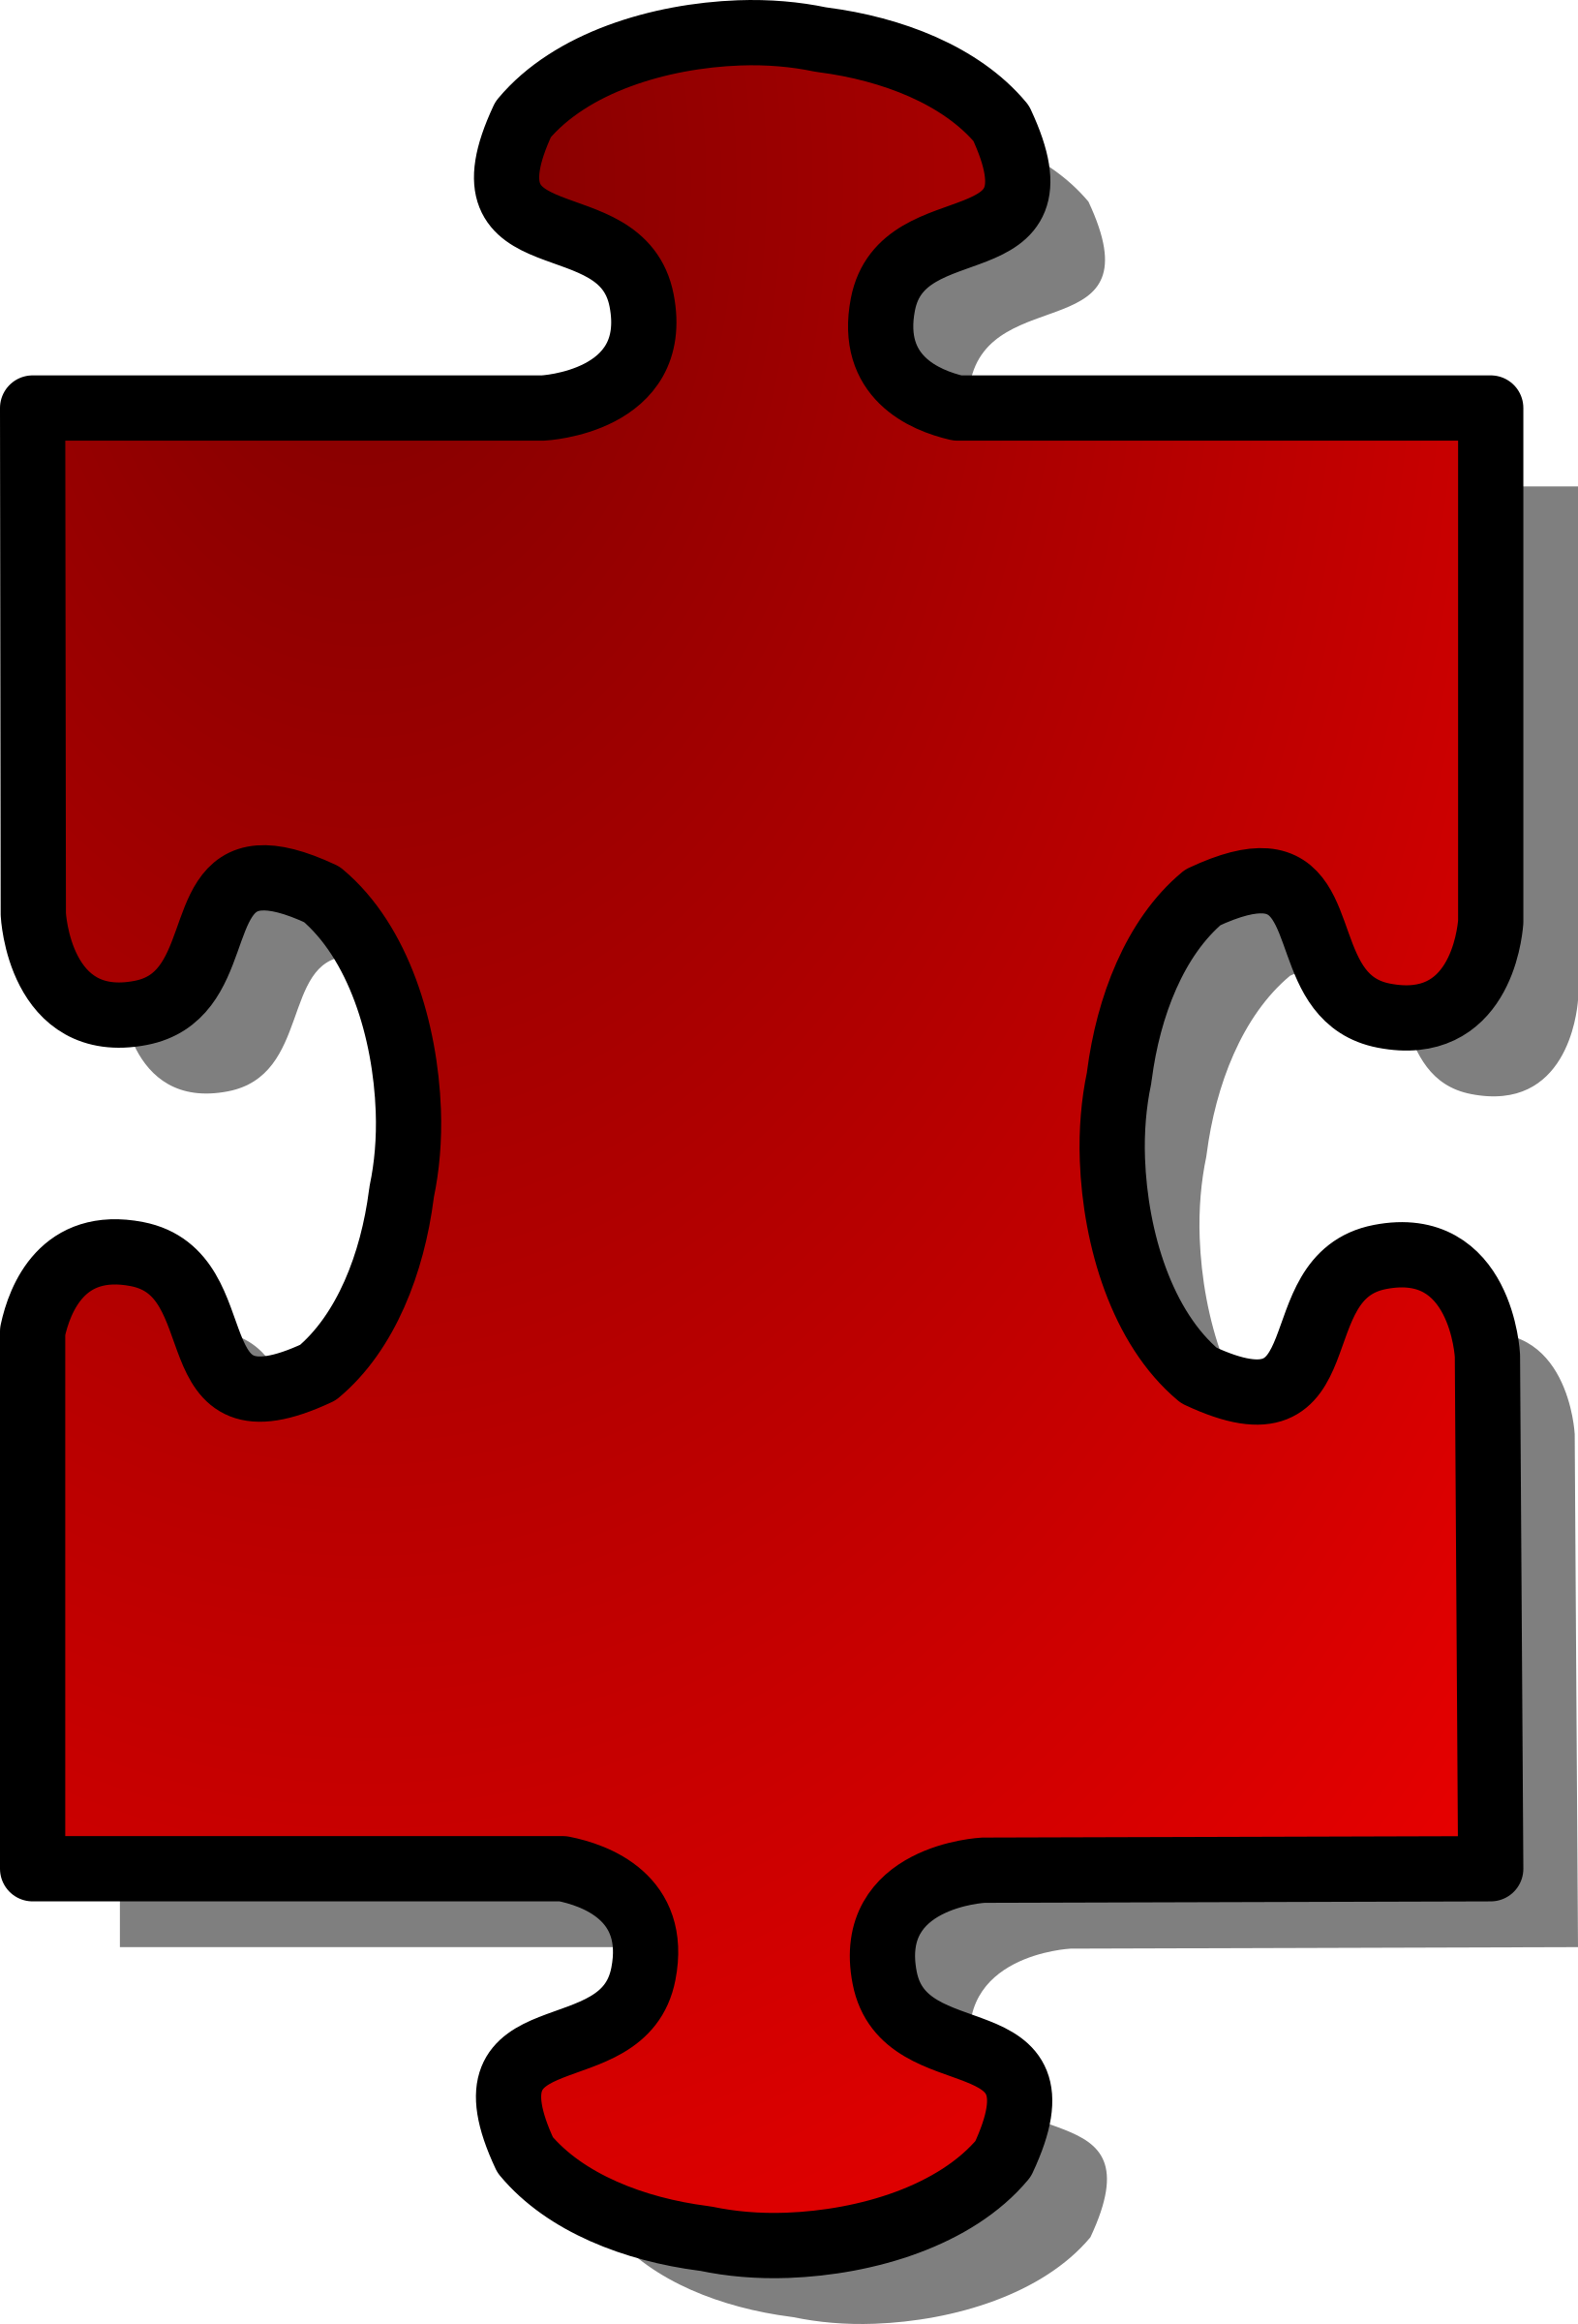 Red Jigsaw piece 01 by nicubunu